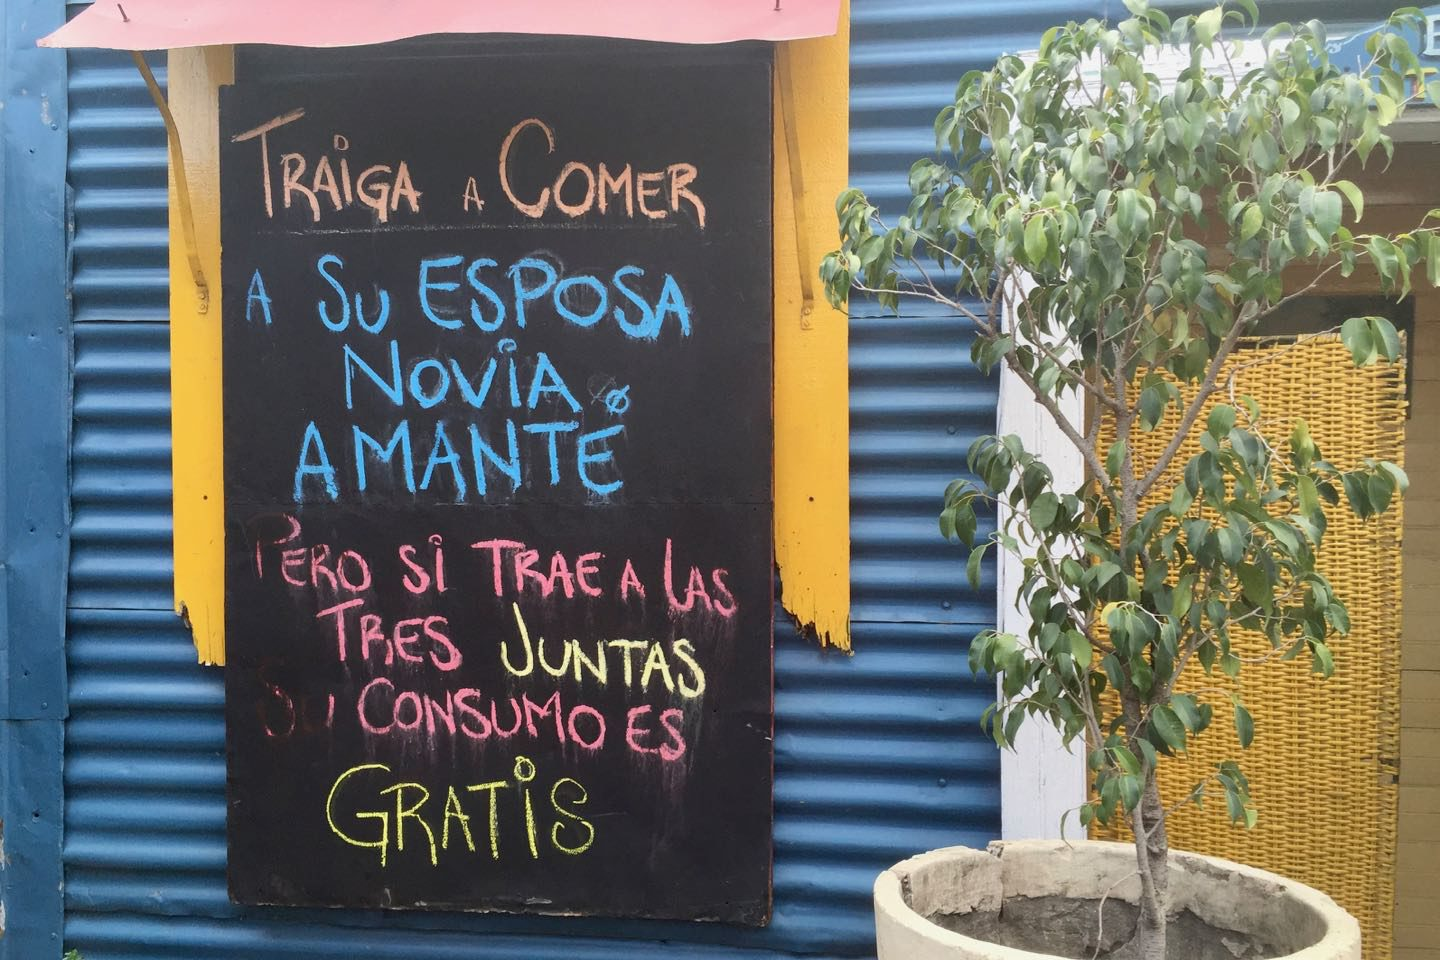 Funny signboard at a local restaurant in La Boca. Translation: Bring your wife, girlfriend or lover to eat but if you bring all three together the bill is on us.